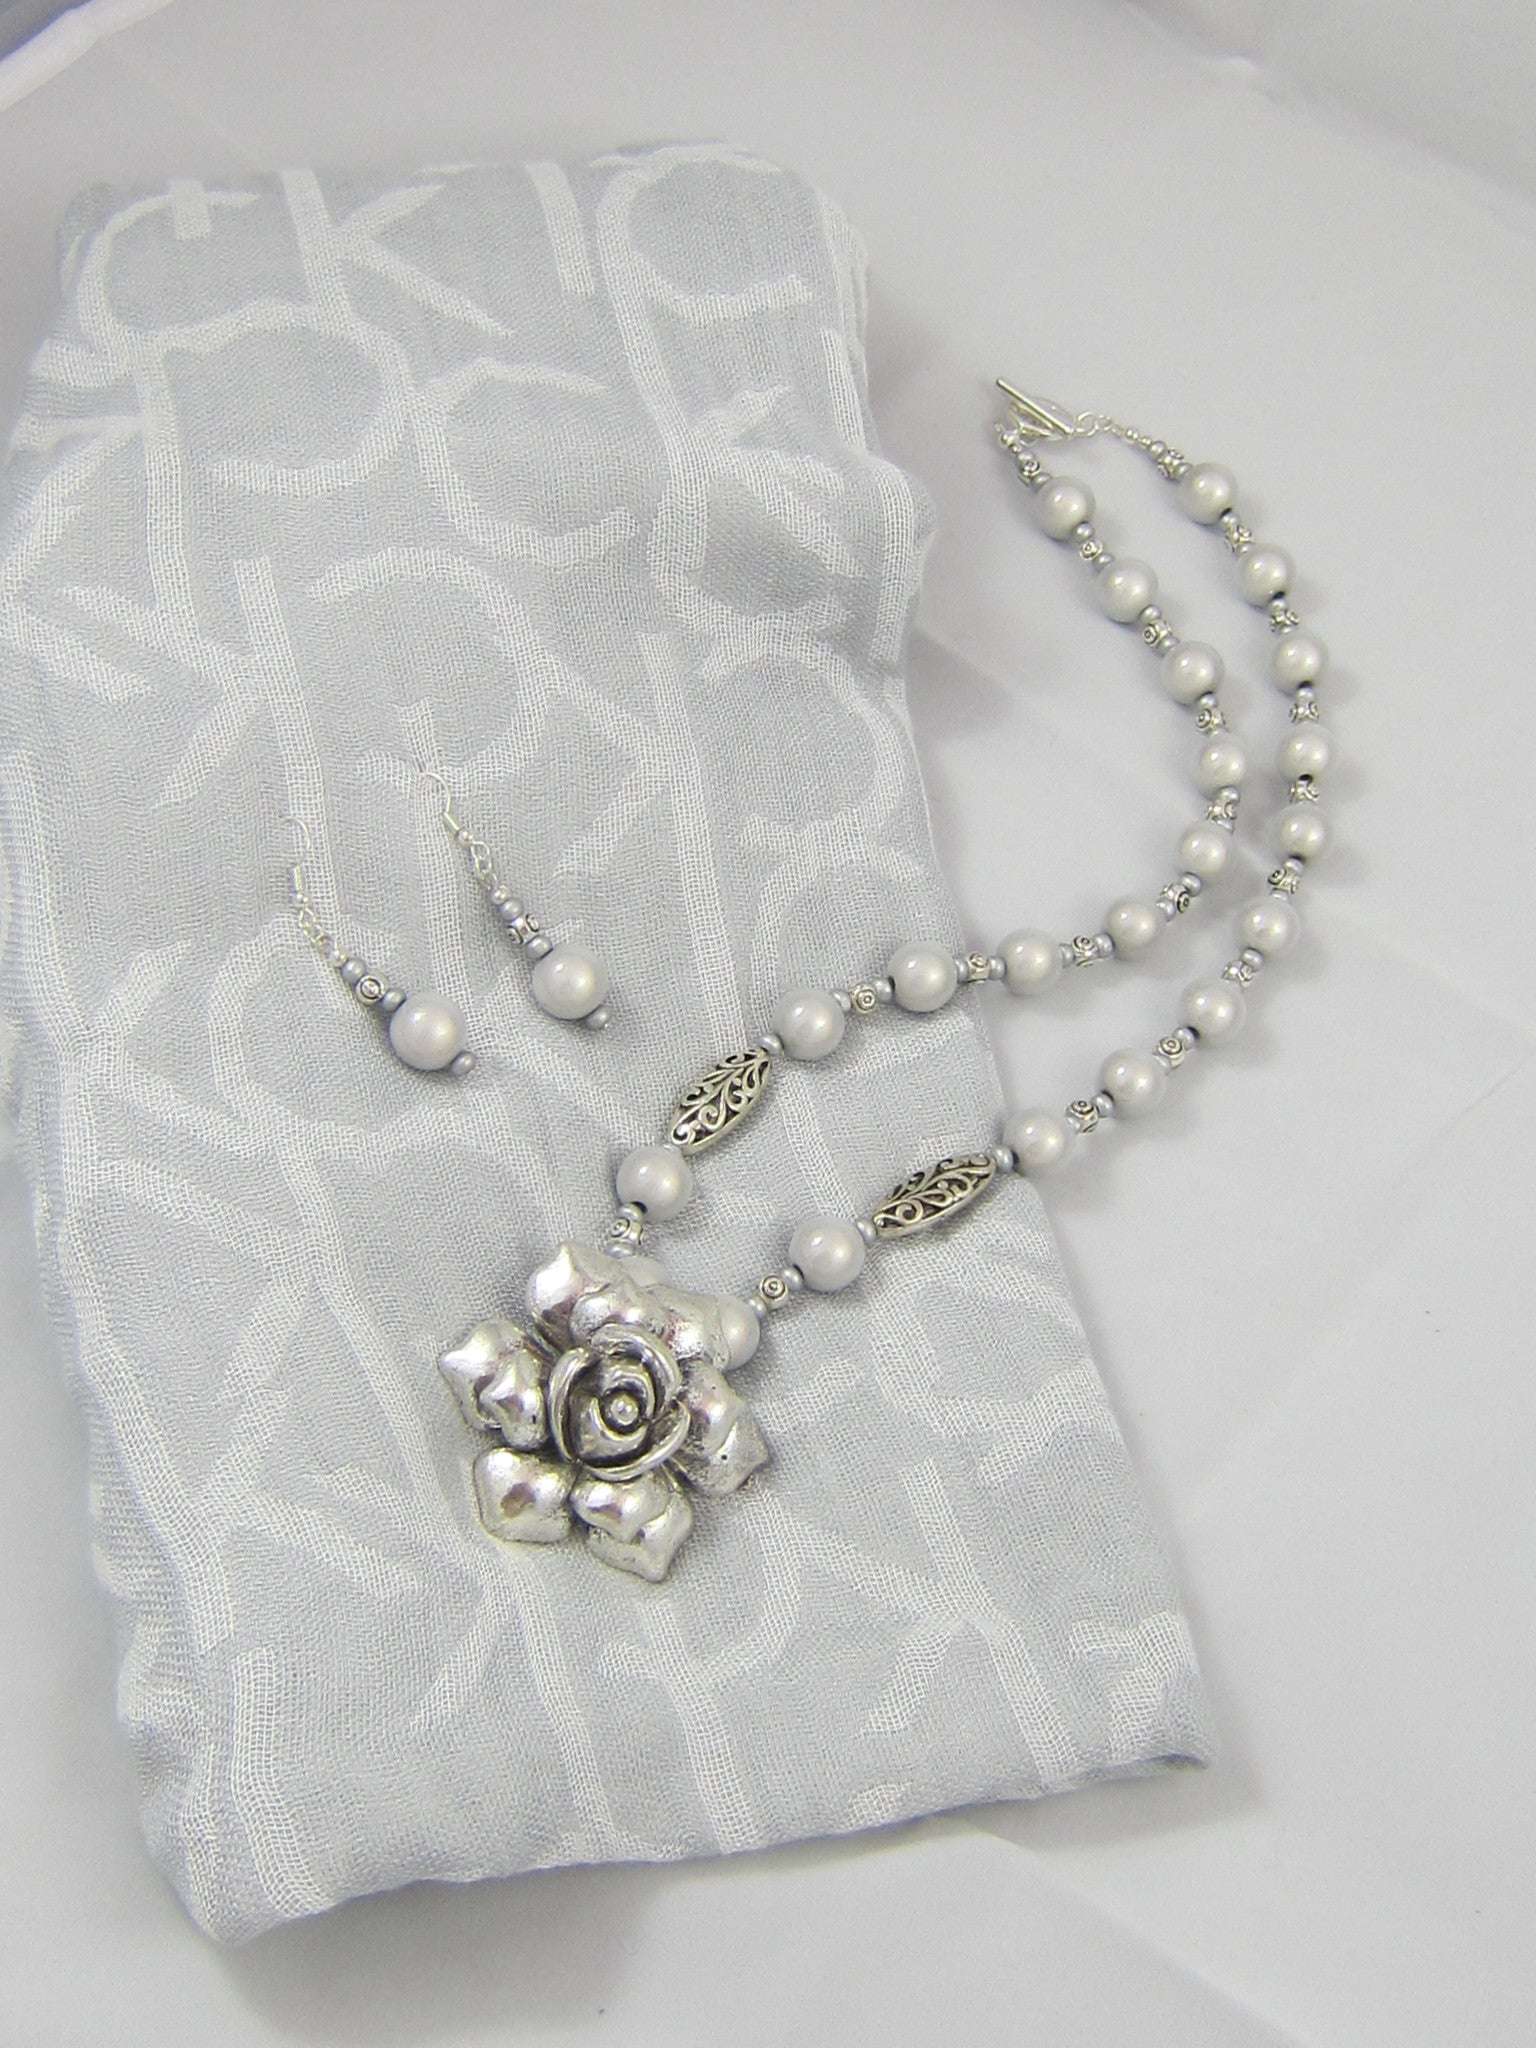 Antiqued Silver Rose Pendant with Light Gray Pearlized Glass Beads